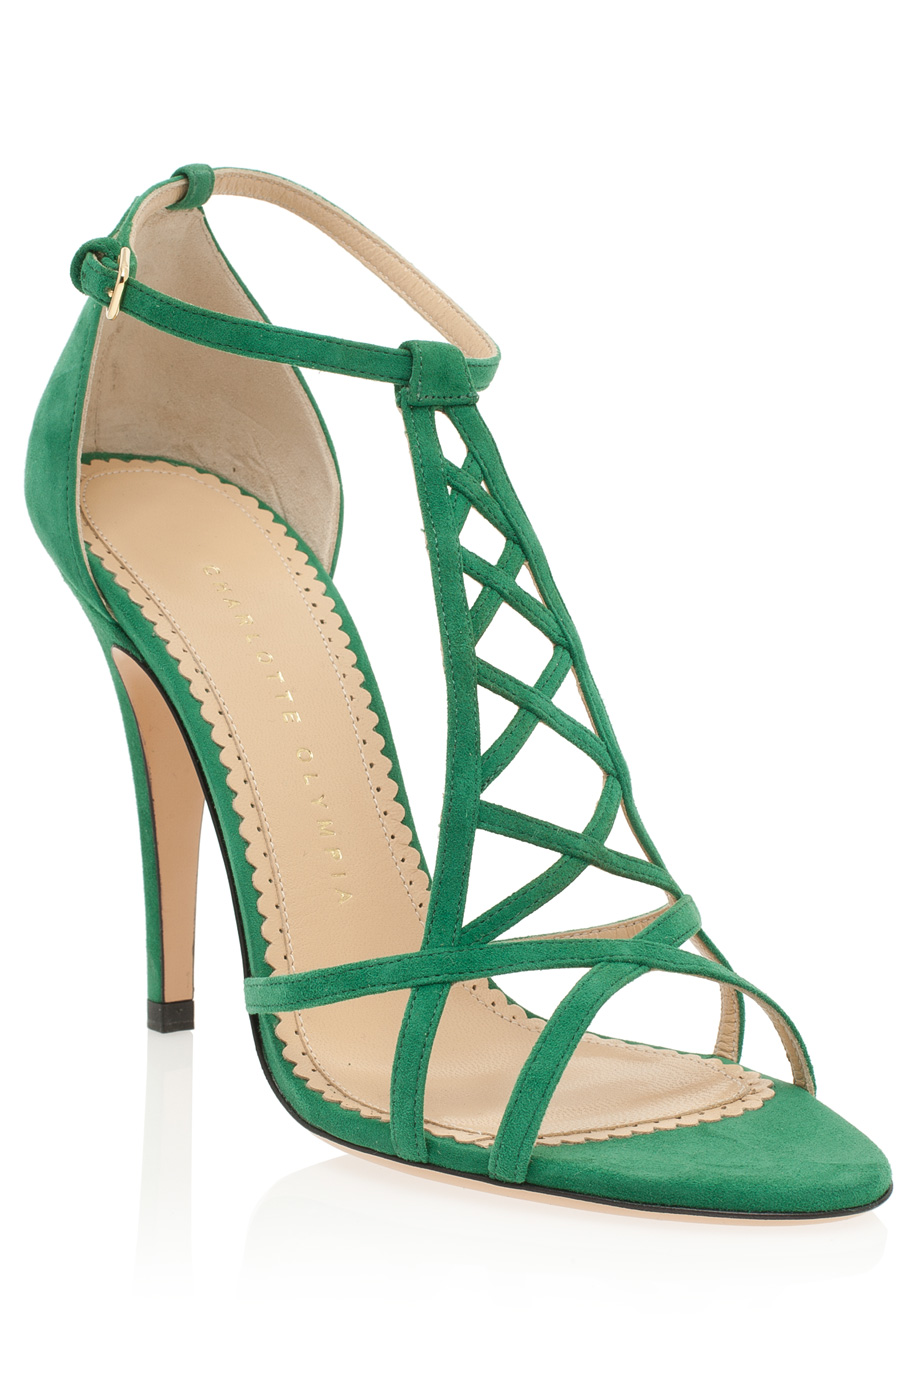 Charlotte Olympia Eiffel Tower Sandals In Green Lyst